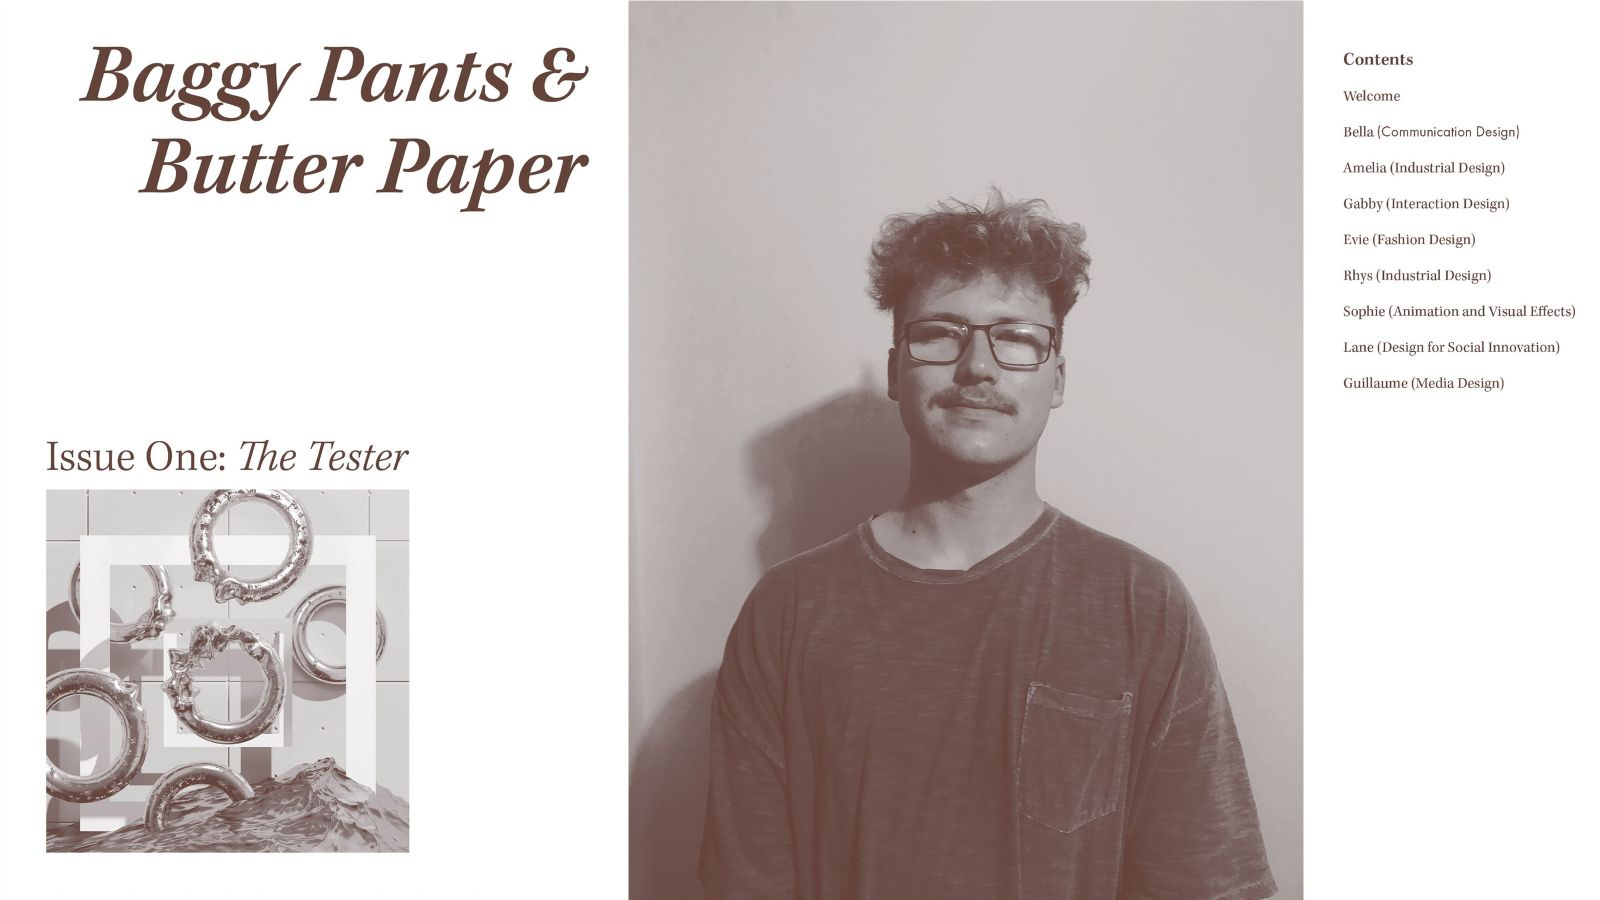 Cover of Baggy Pants and Butter Paper zine and portrait of Hamish Besley